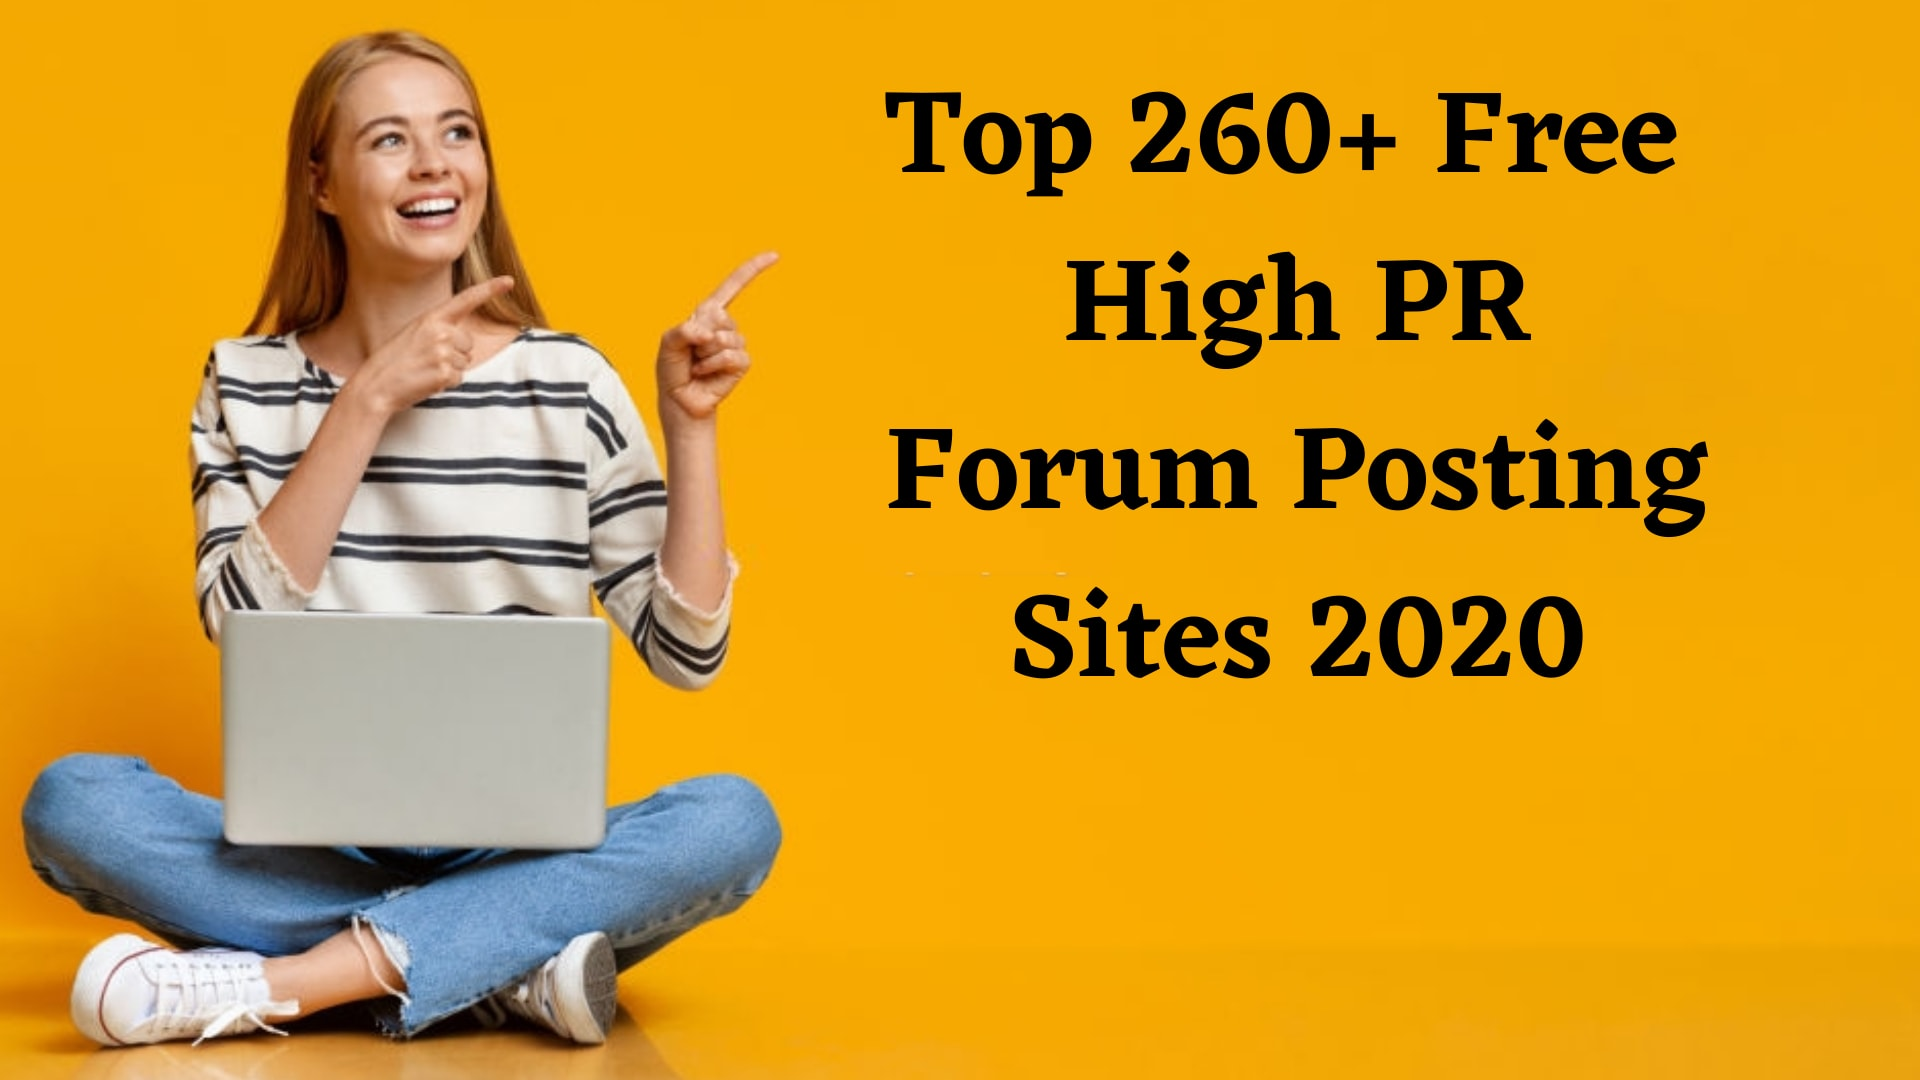 High PR Forum Posting Sites - Theme Builder Layout